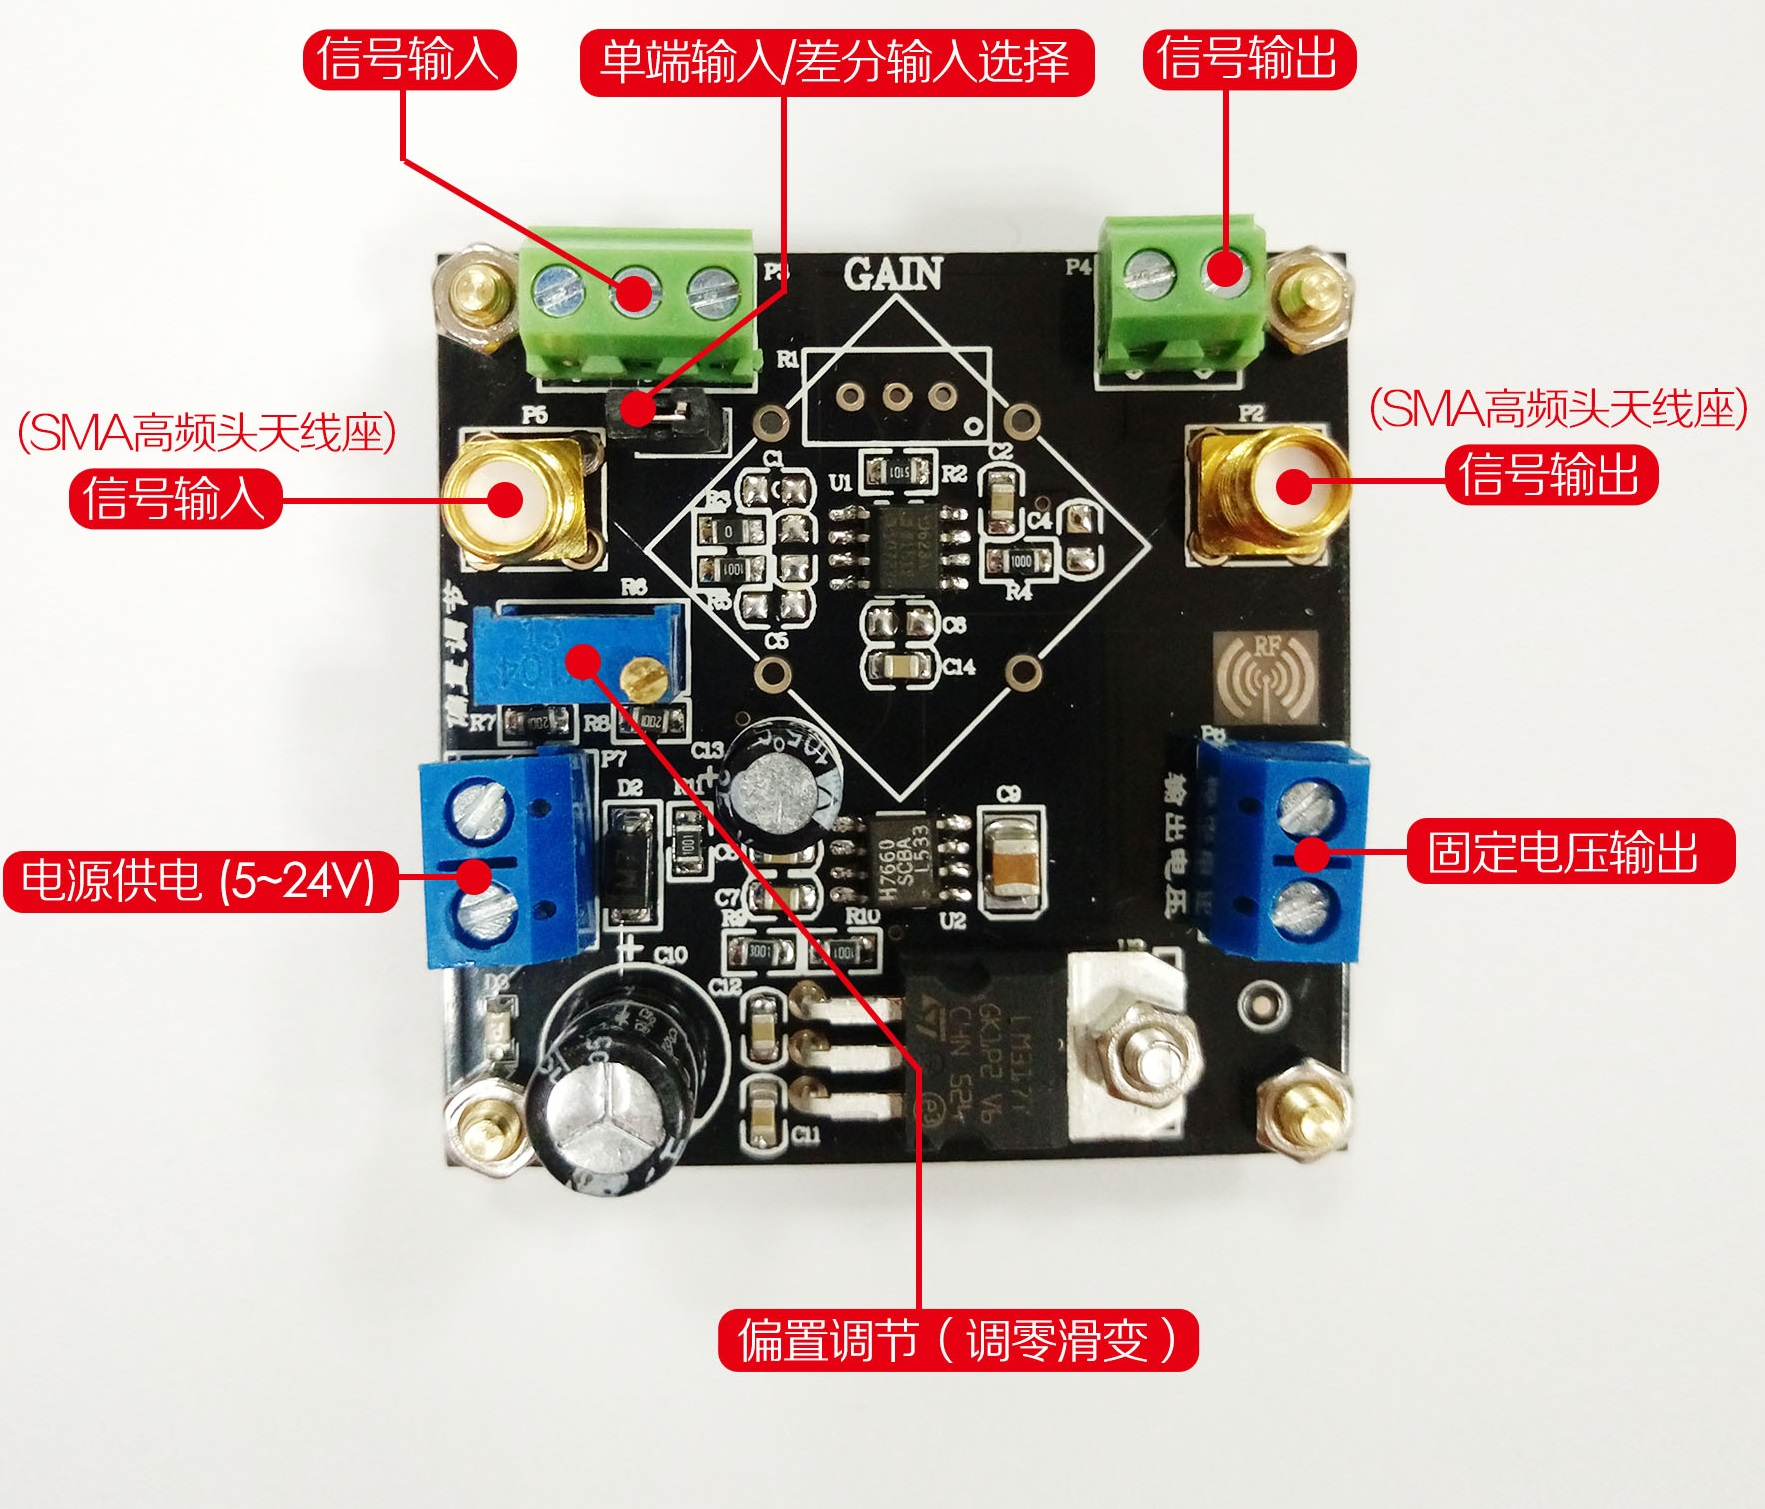 The Instrumentation Amplifier AD623 Amplifier Module Adjustable Single Power Single End / Bad Nothing Microvolt Signal